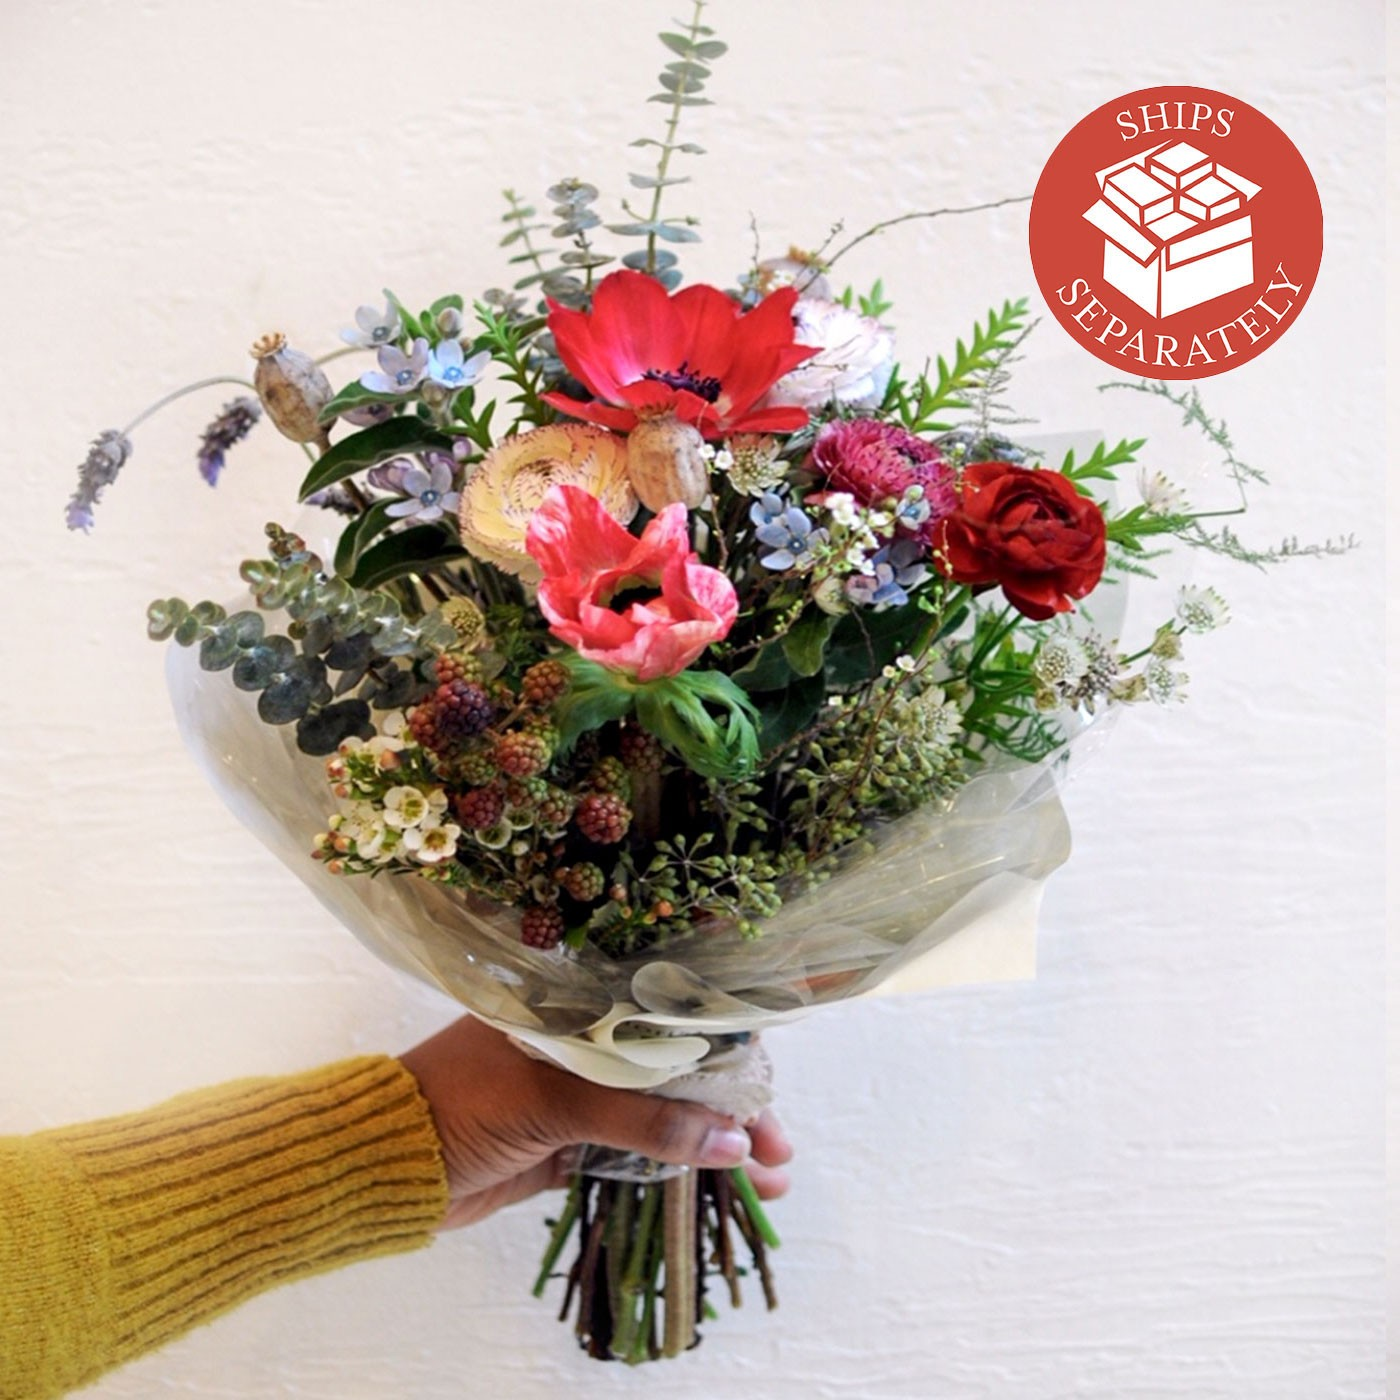 Hand-tied Flower Bouquet, 20 Stems - Il Fiorista | Eataly.com